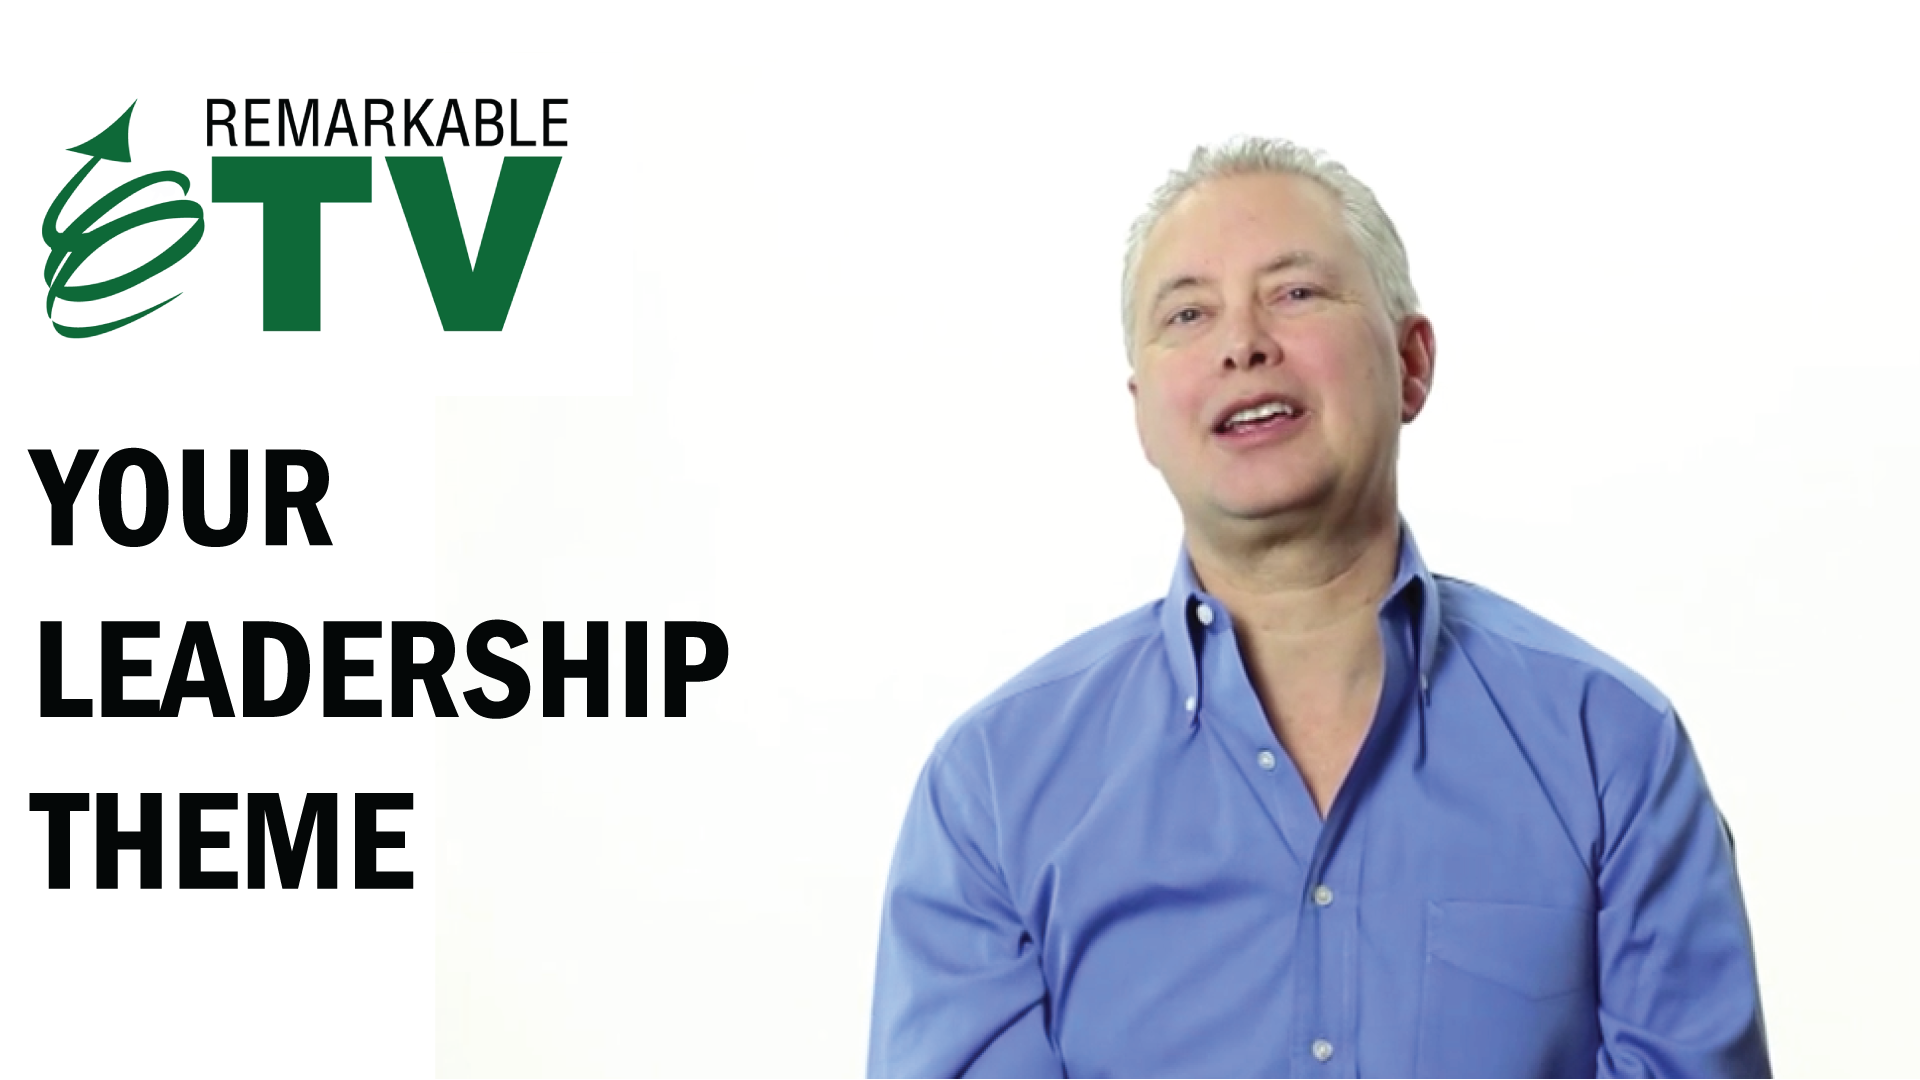 Find out your leadership theme in this episode of Remarkable TV with Kevin Eikenberry